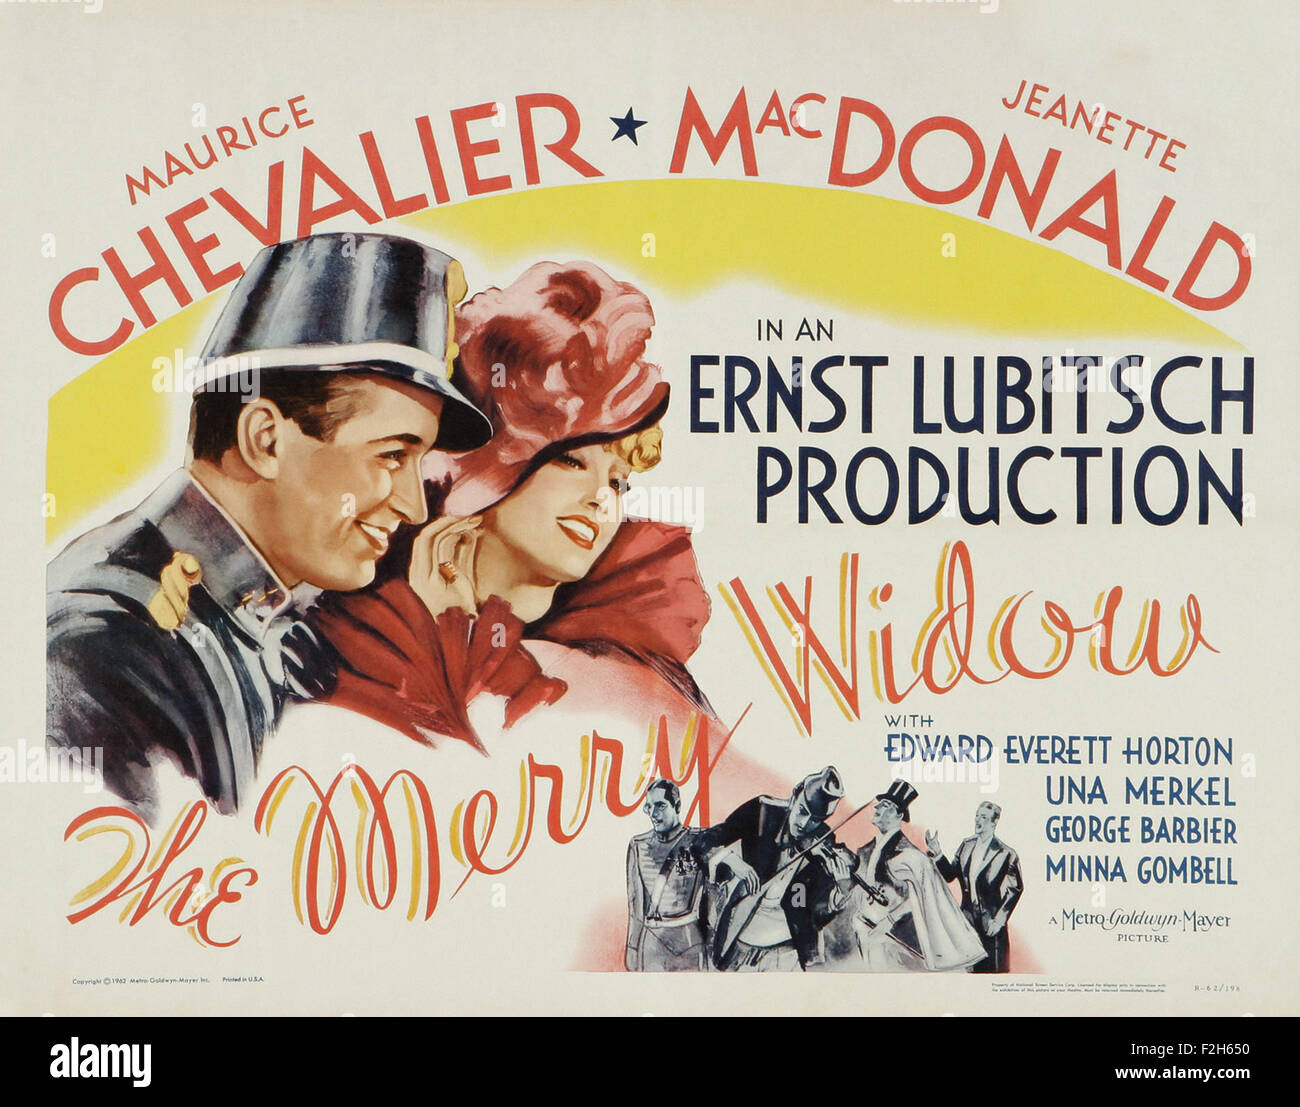 Merry Widow, The (1934) 02 - Movie Poster - Stock Image